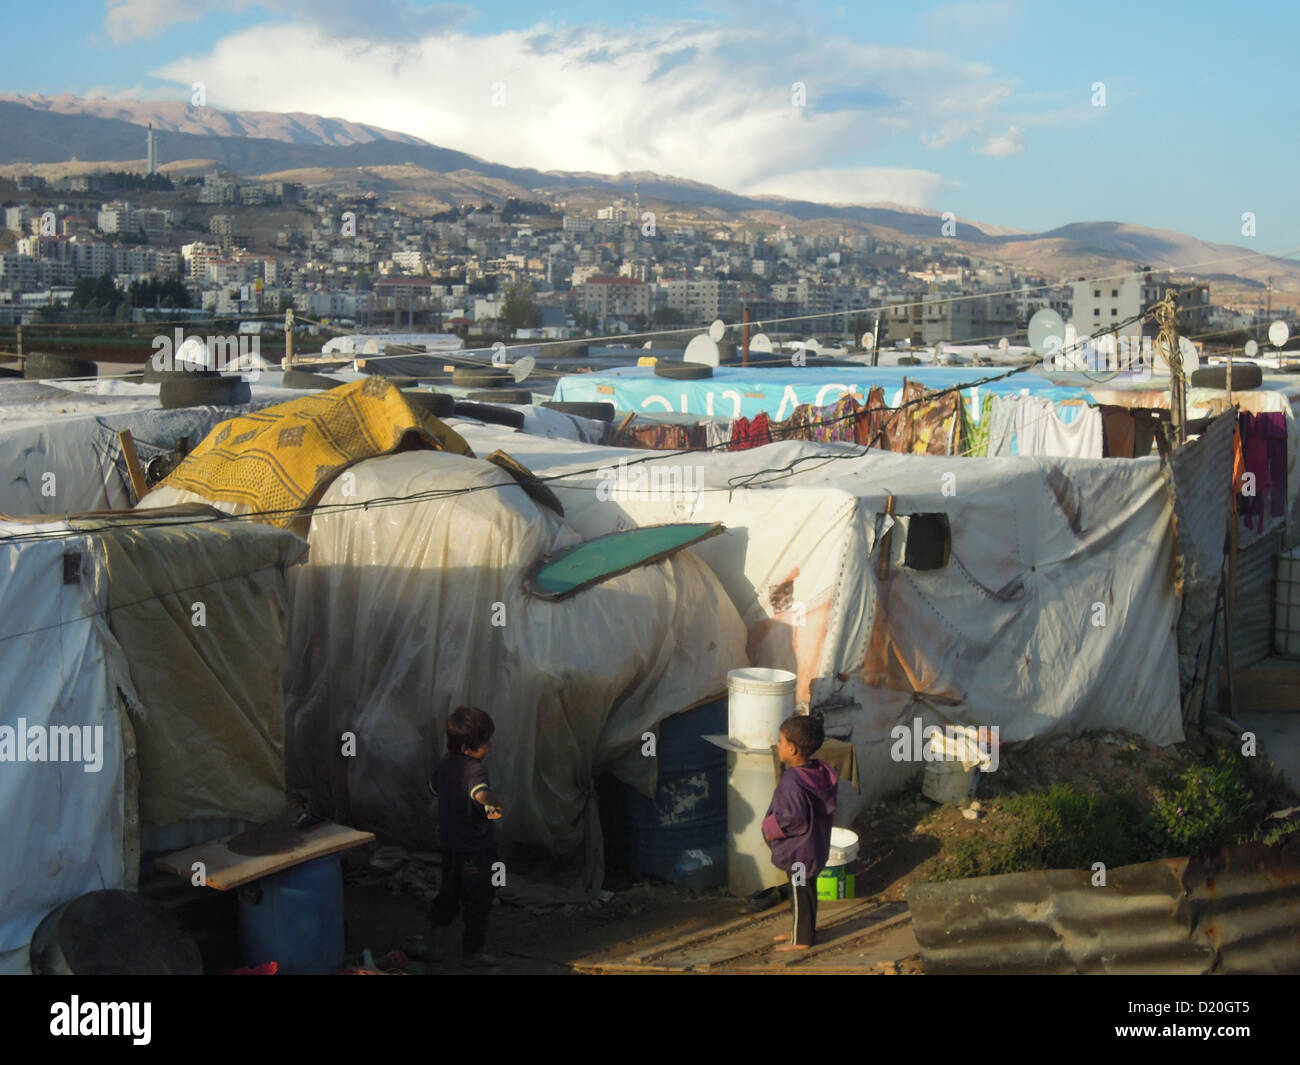 a camp for Syrian refugees near the town zahle in sout lebanon. the baracks are made from tarp over wooden frames. - Stock Image